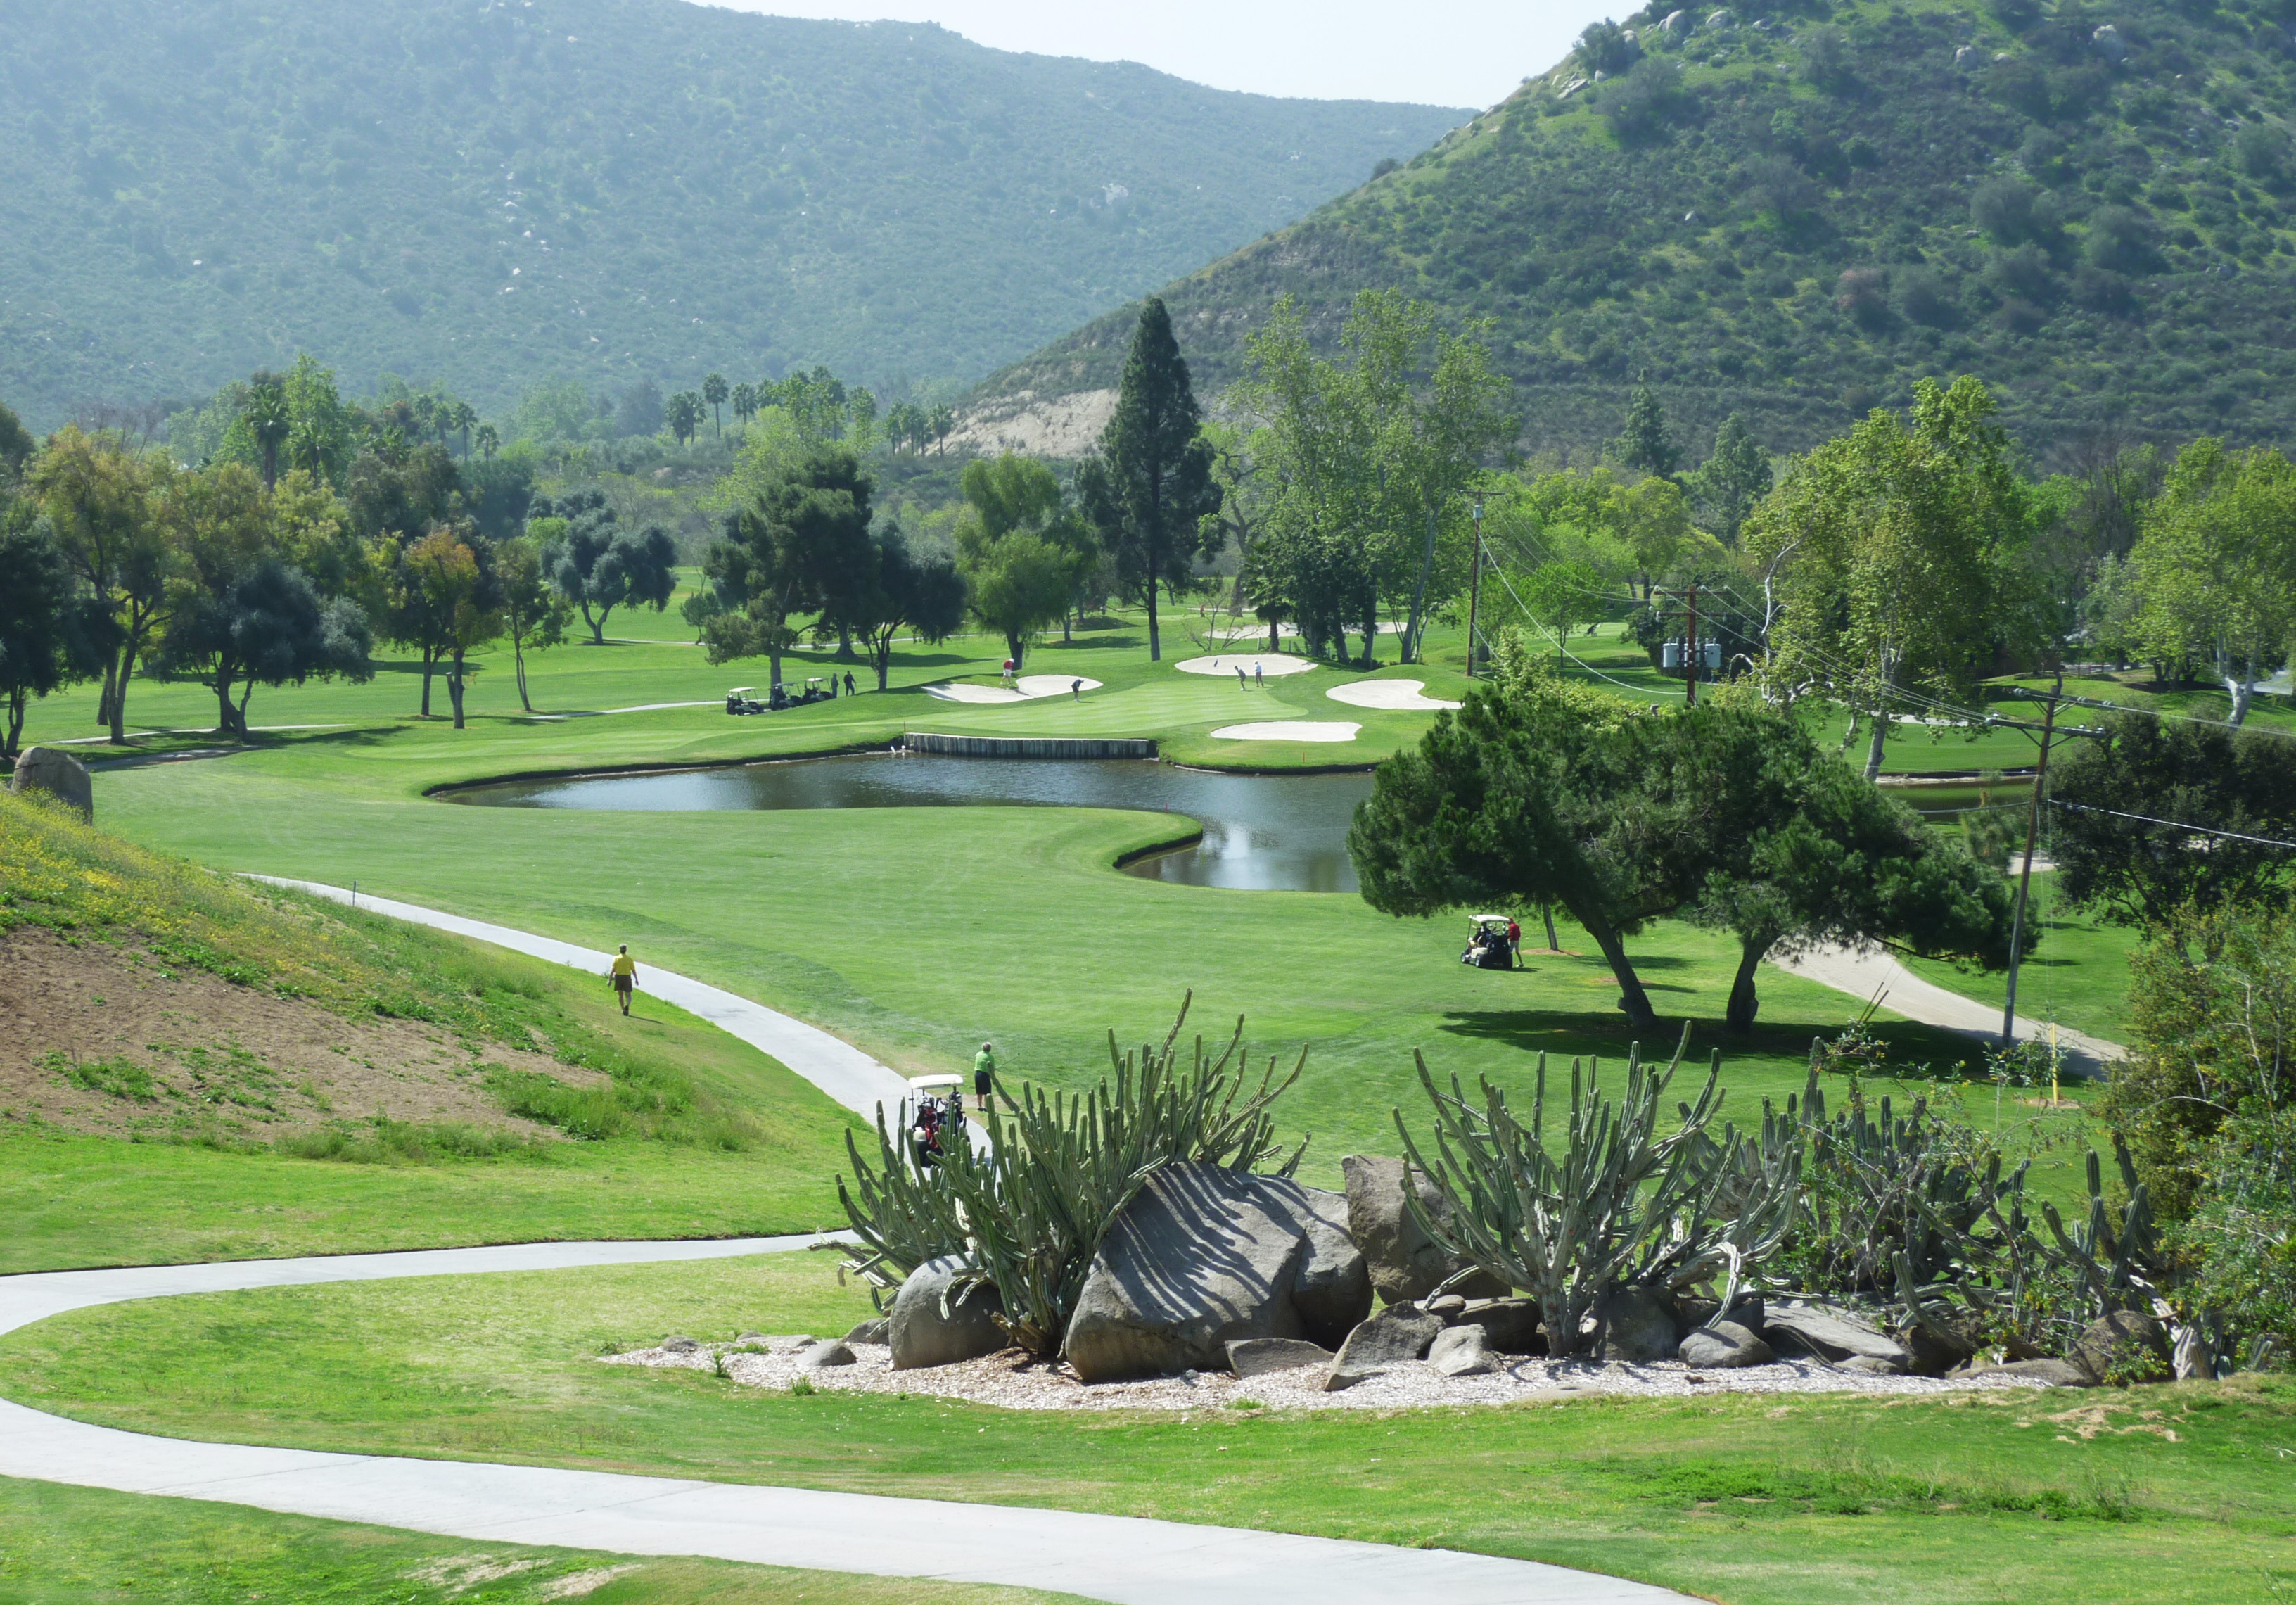 sycuan_golf_resort_willow_glen_course_4th_hole.jpg